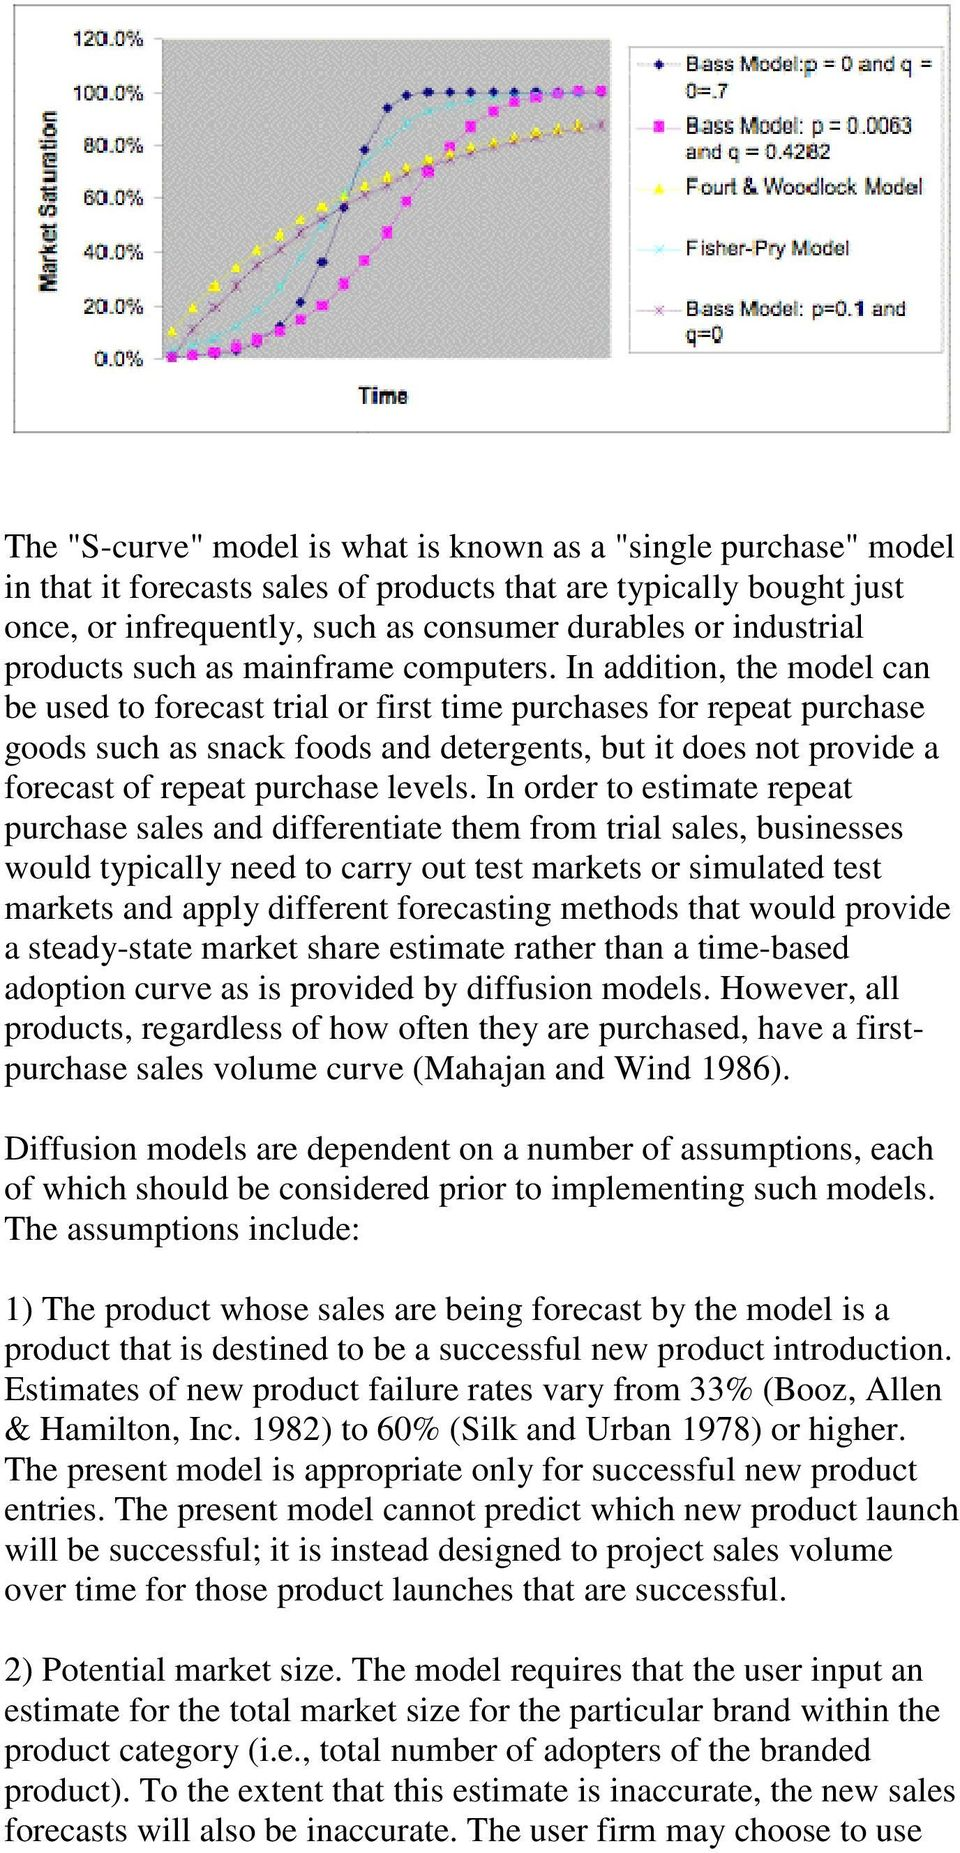 In addition, the model can be used to forecast trial or first time purchases for repeat purchase goods such as snack foods and detergents, but it does not provide a forecast of repeat purchase levels.